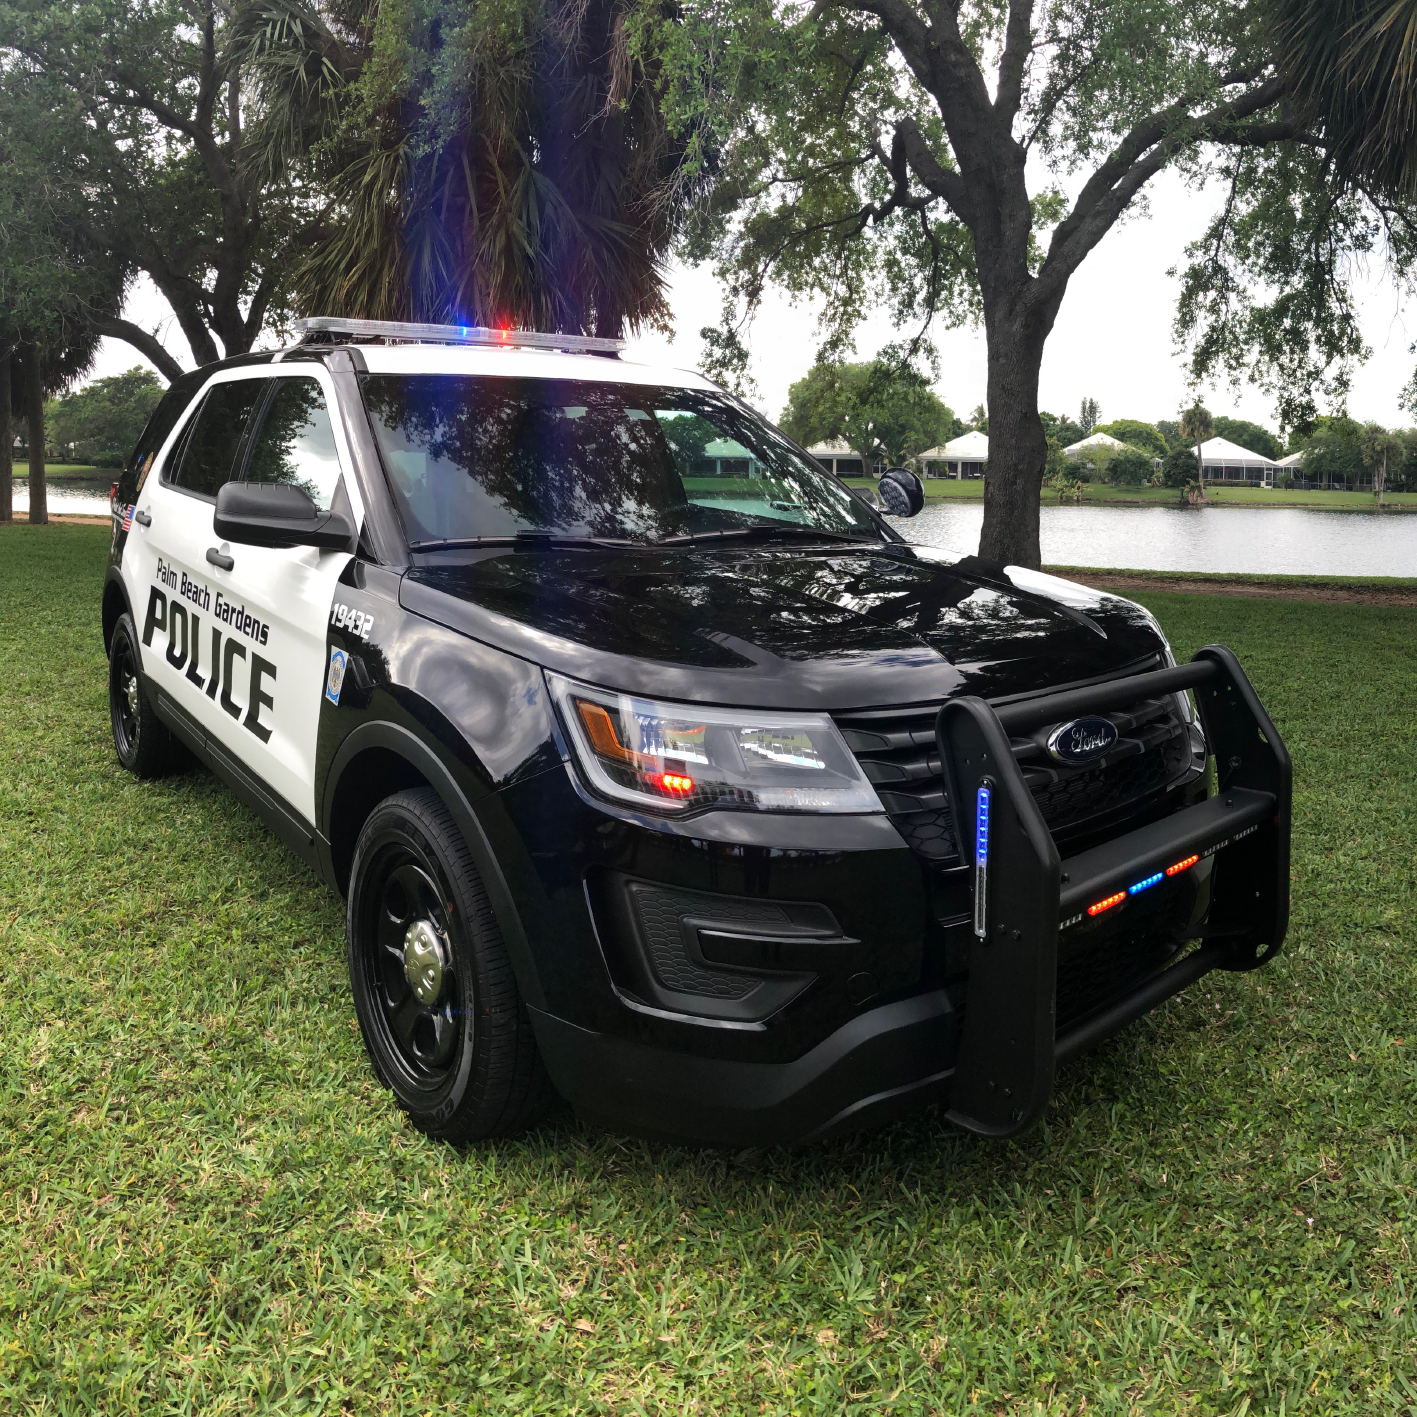 Police SUV style vehicles